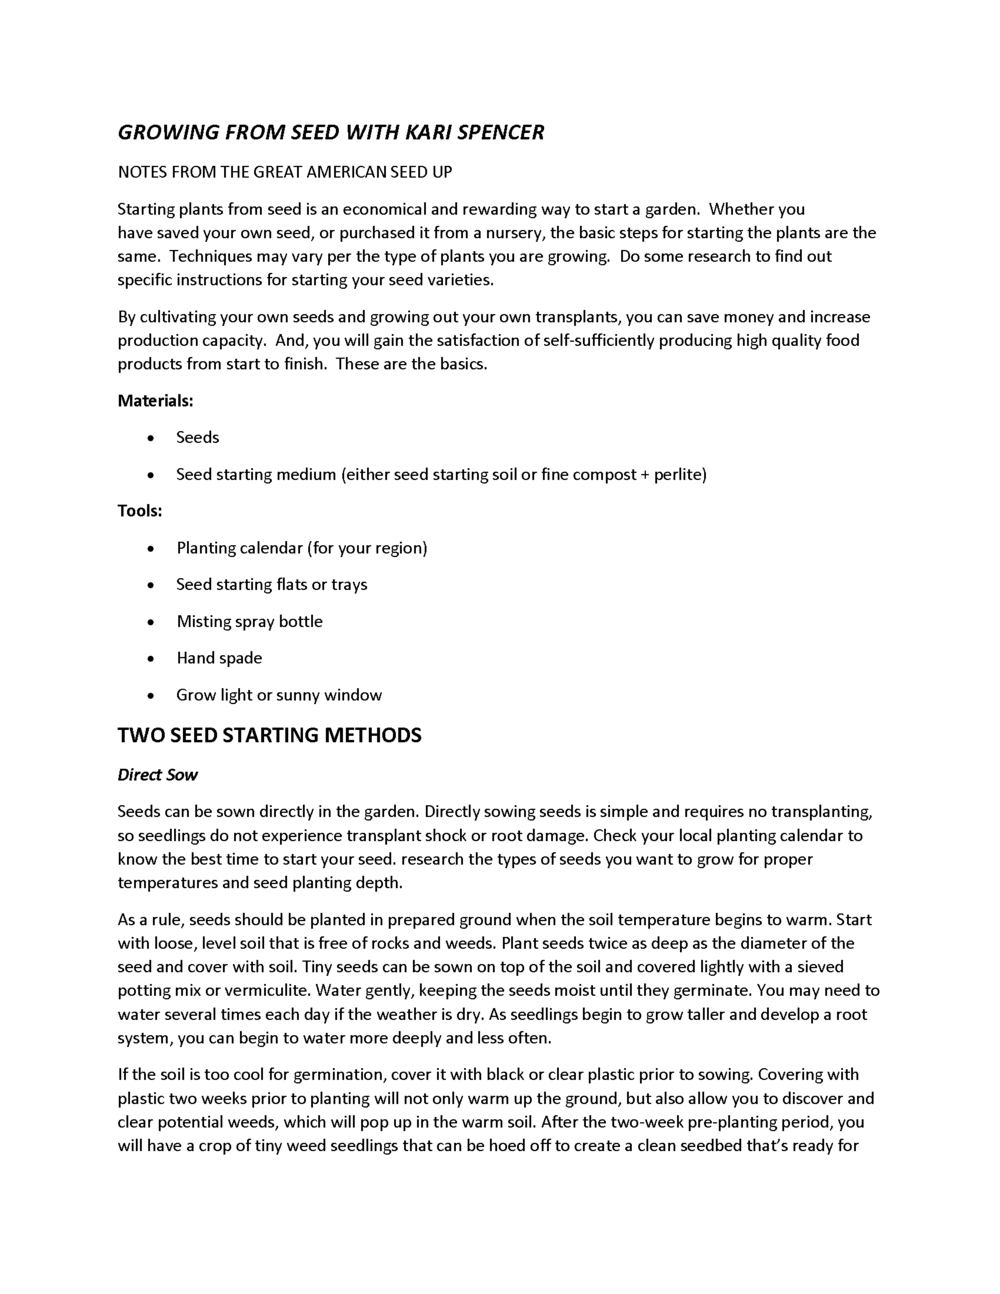 GROWING FROM SEED WITH KARI SPENCER notes_Page_1.png